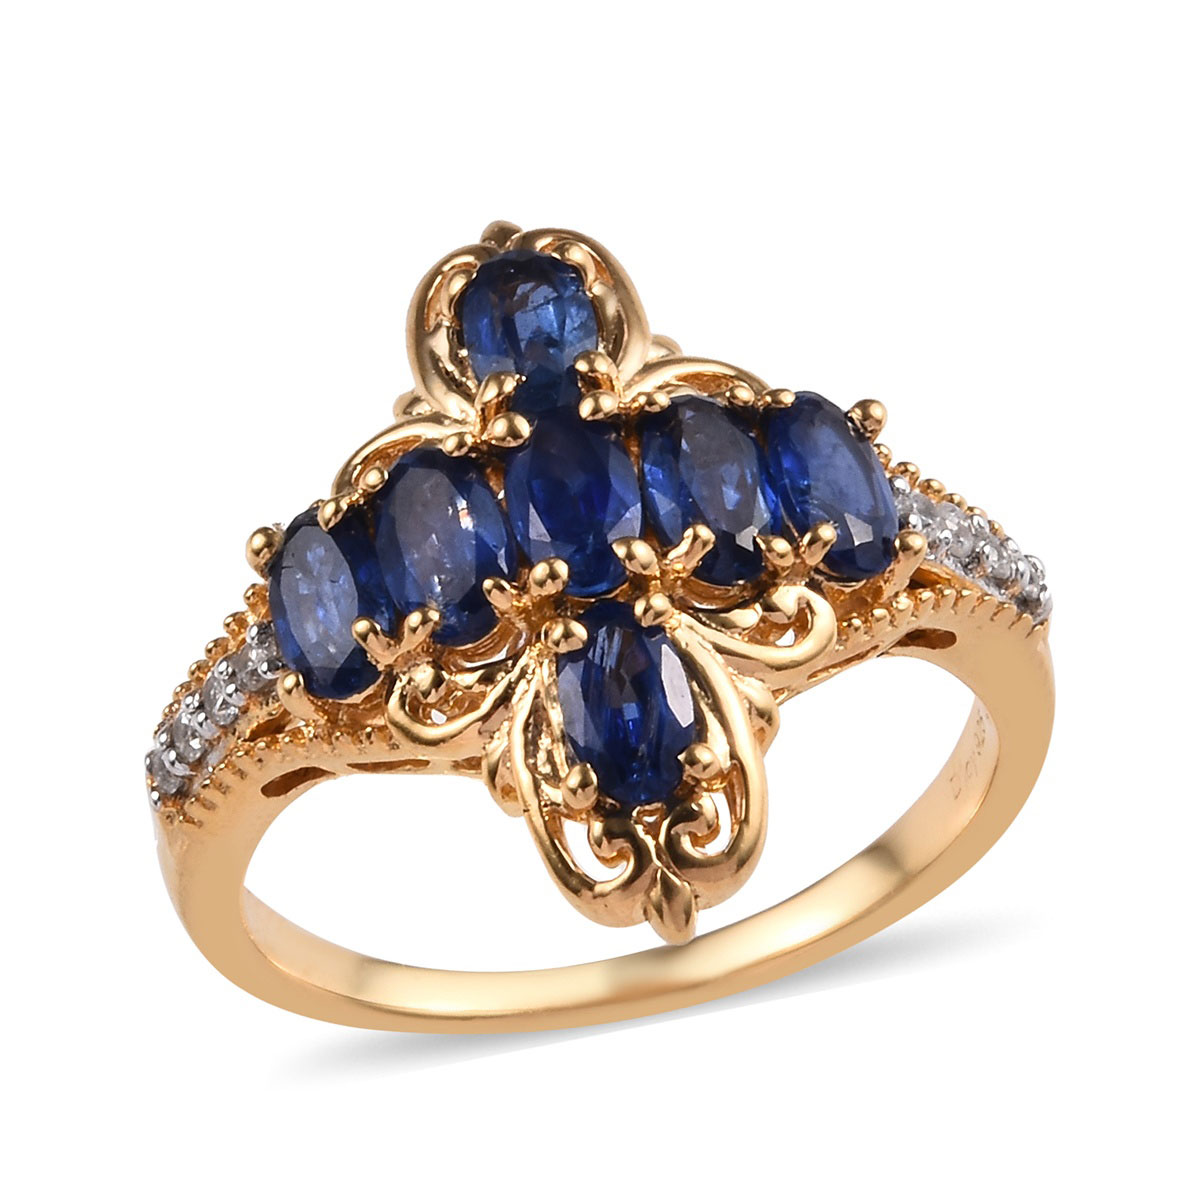 Statement Ring 925 Sterling Silver Vermeil Yellow Gold Oval Blue Zircon Jewelry for Women Size 10 Ct 1.5